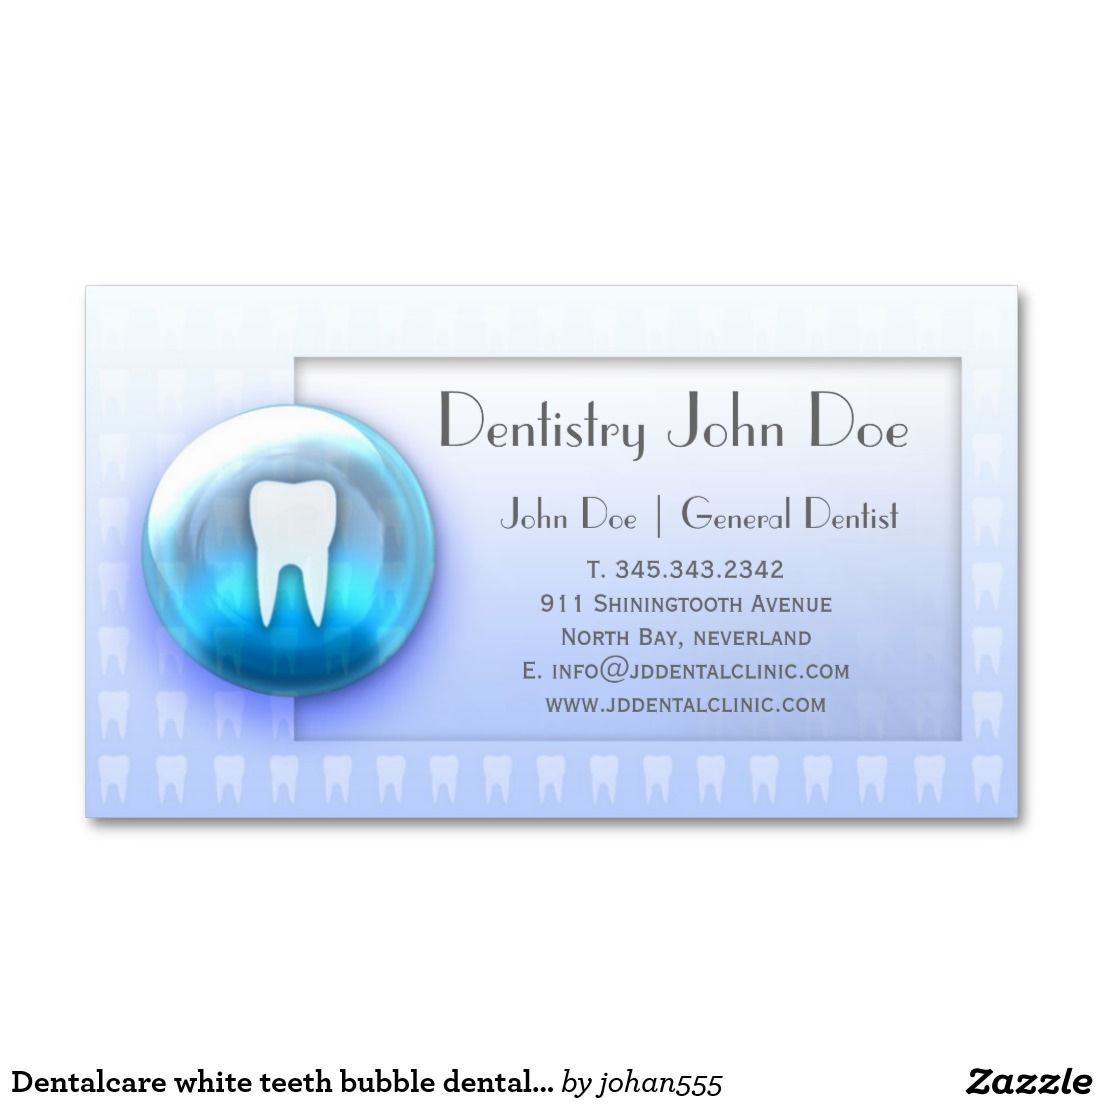 Dentist business card template choice image templates example dentalcare white teeth bubble dental business card dental dentalcare white teeth bubble dental business card alramifo reheart Image collections